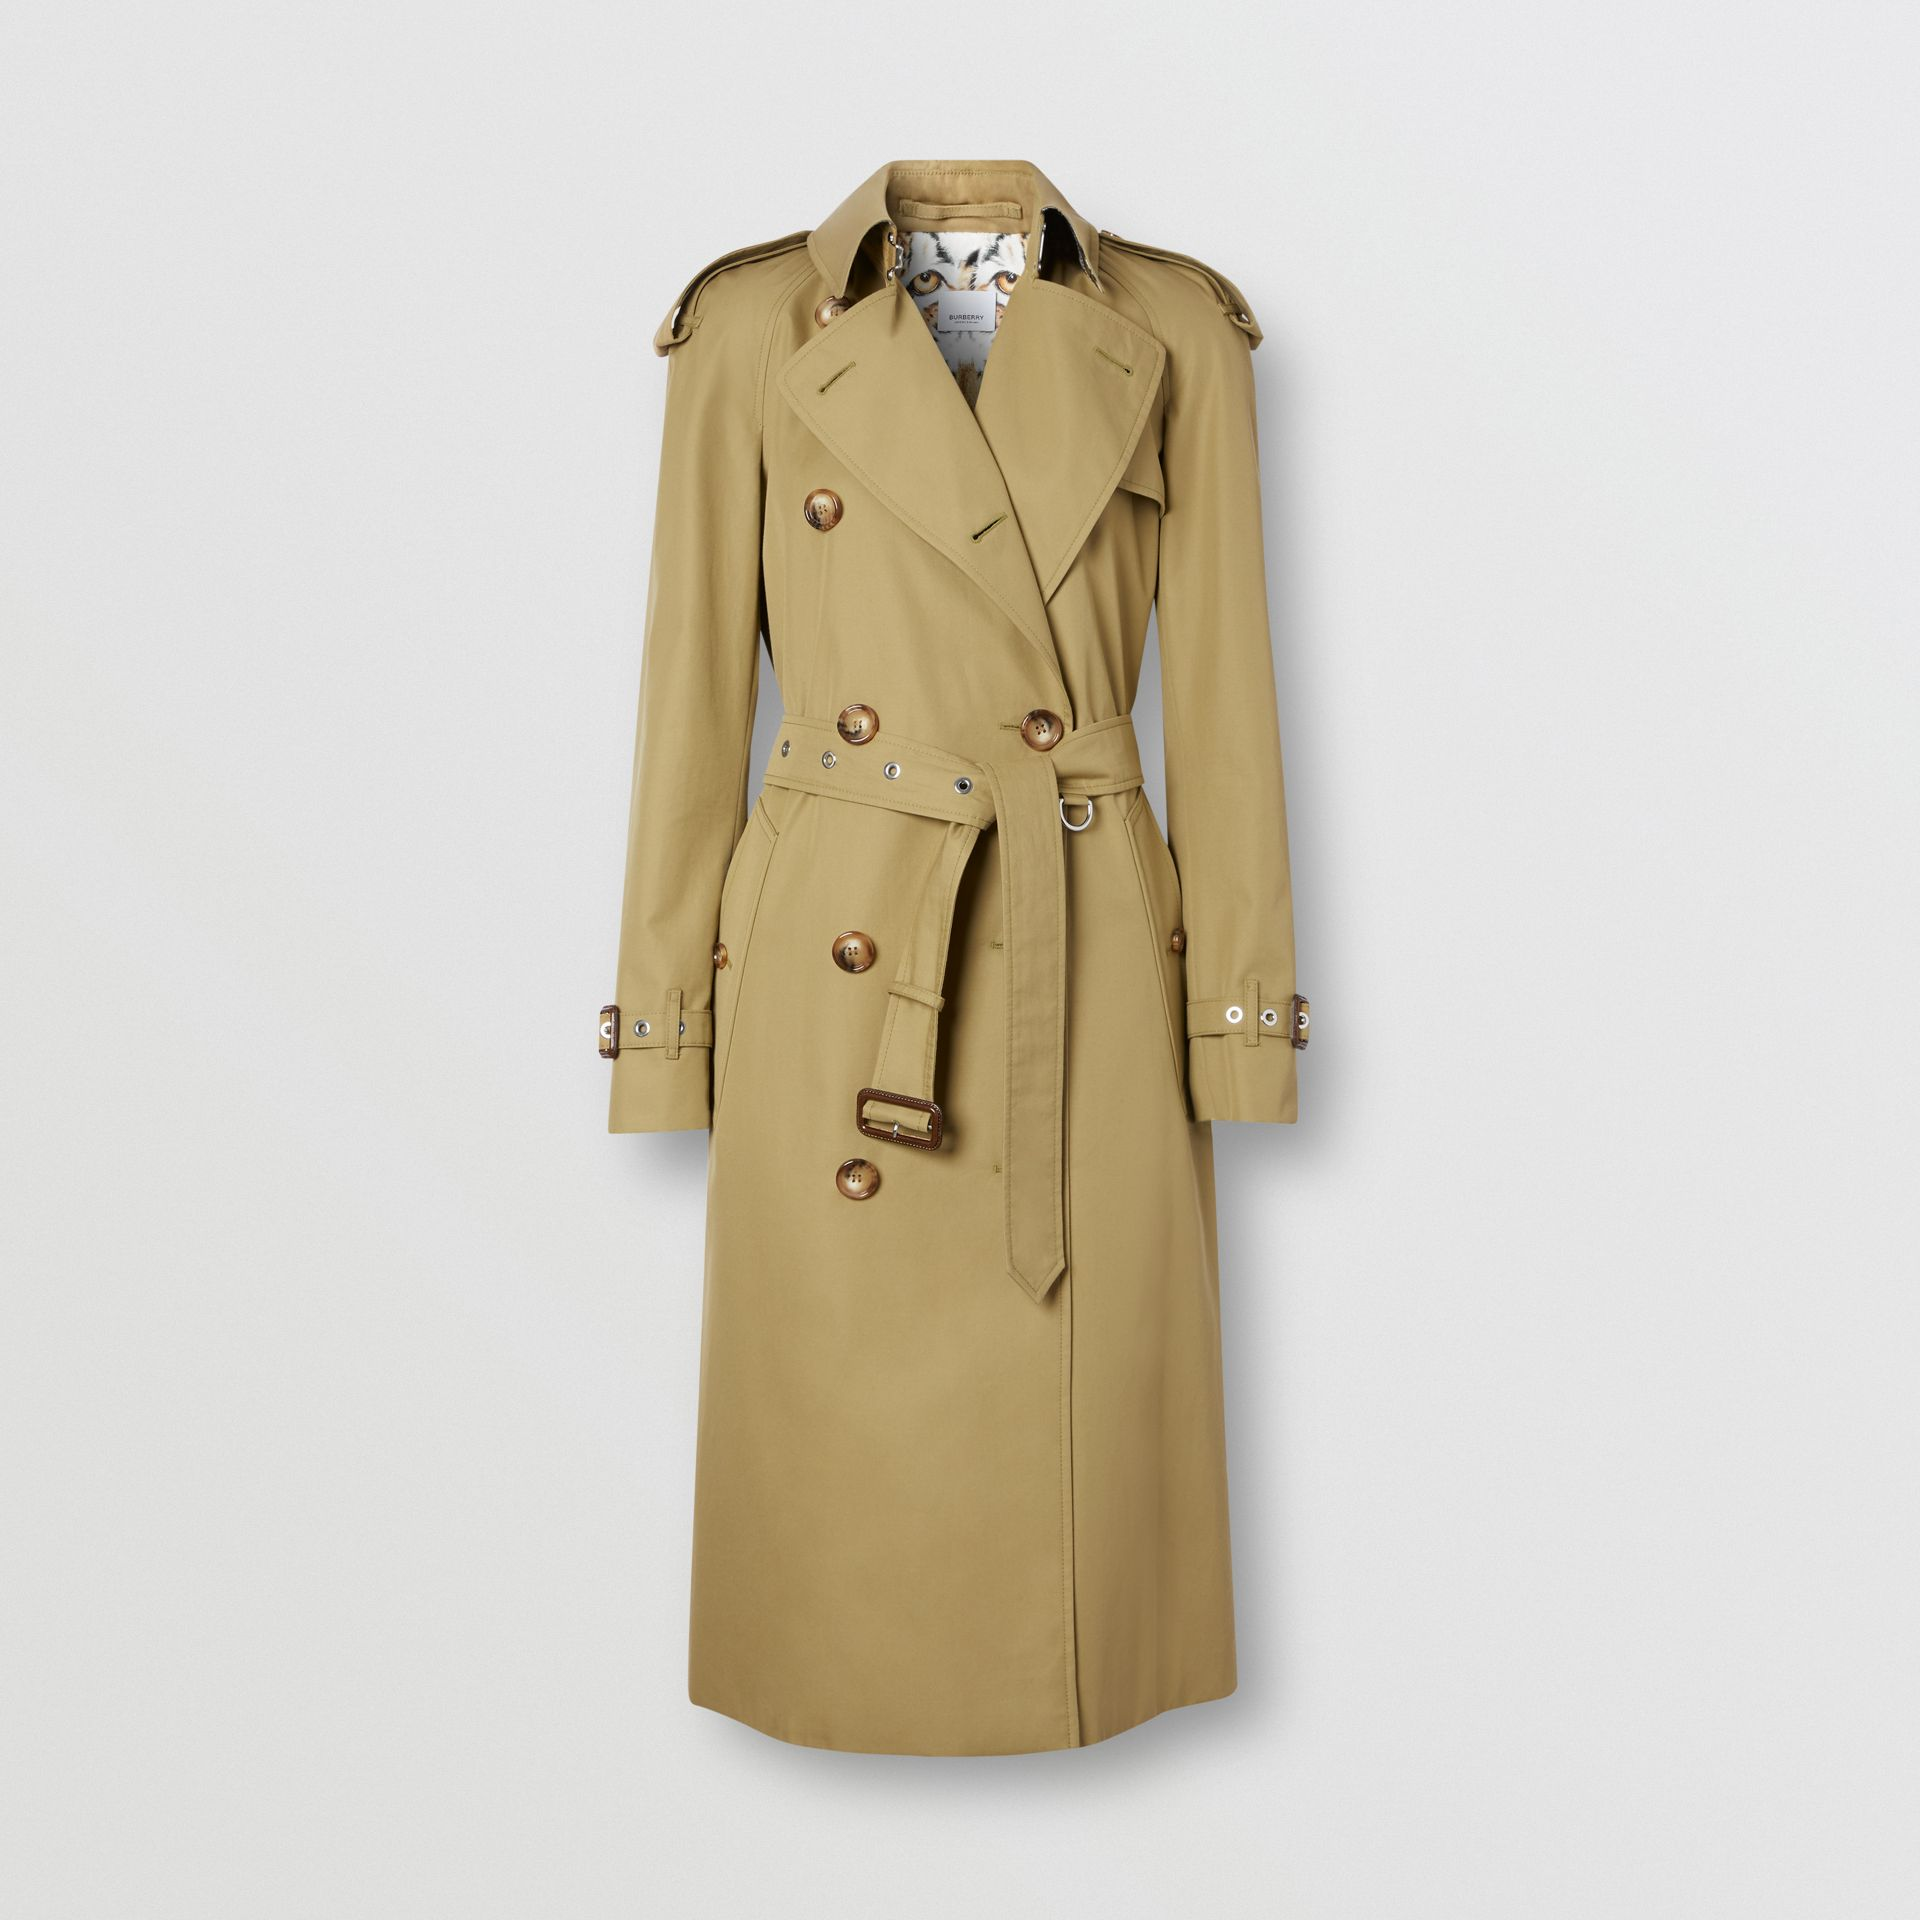 Animalia Print-lined Cotton Gabardine Trench Coat in Rich Olive - Women | Burberry Canada - gallery image 3